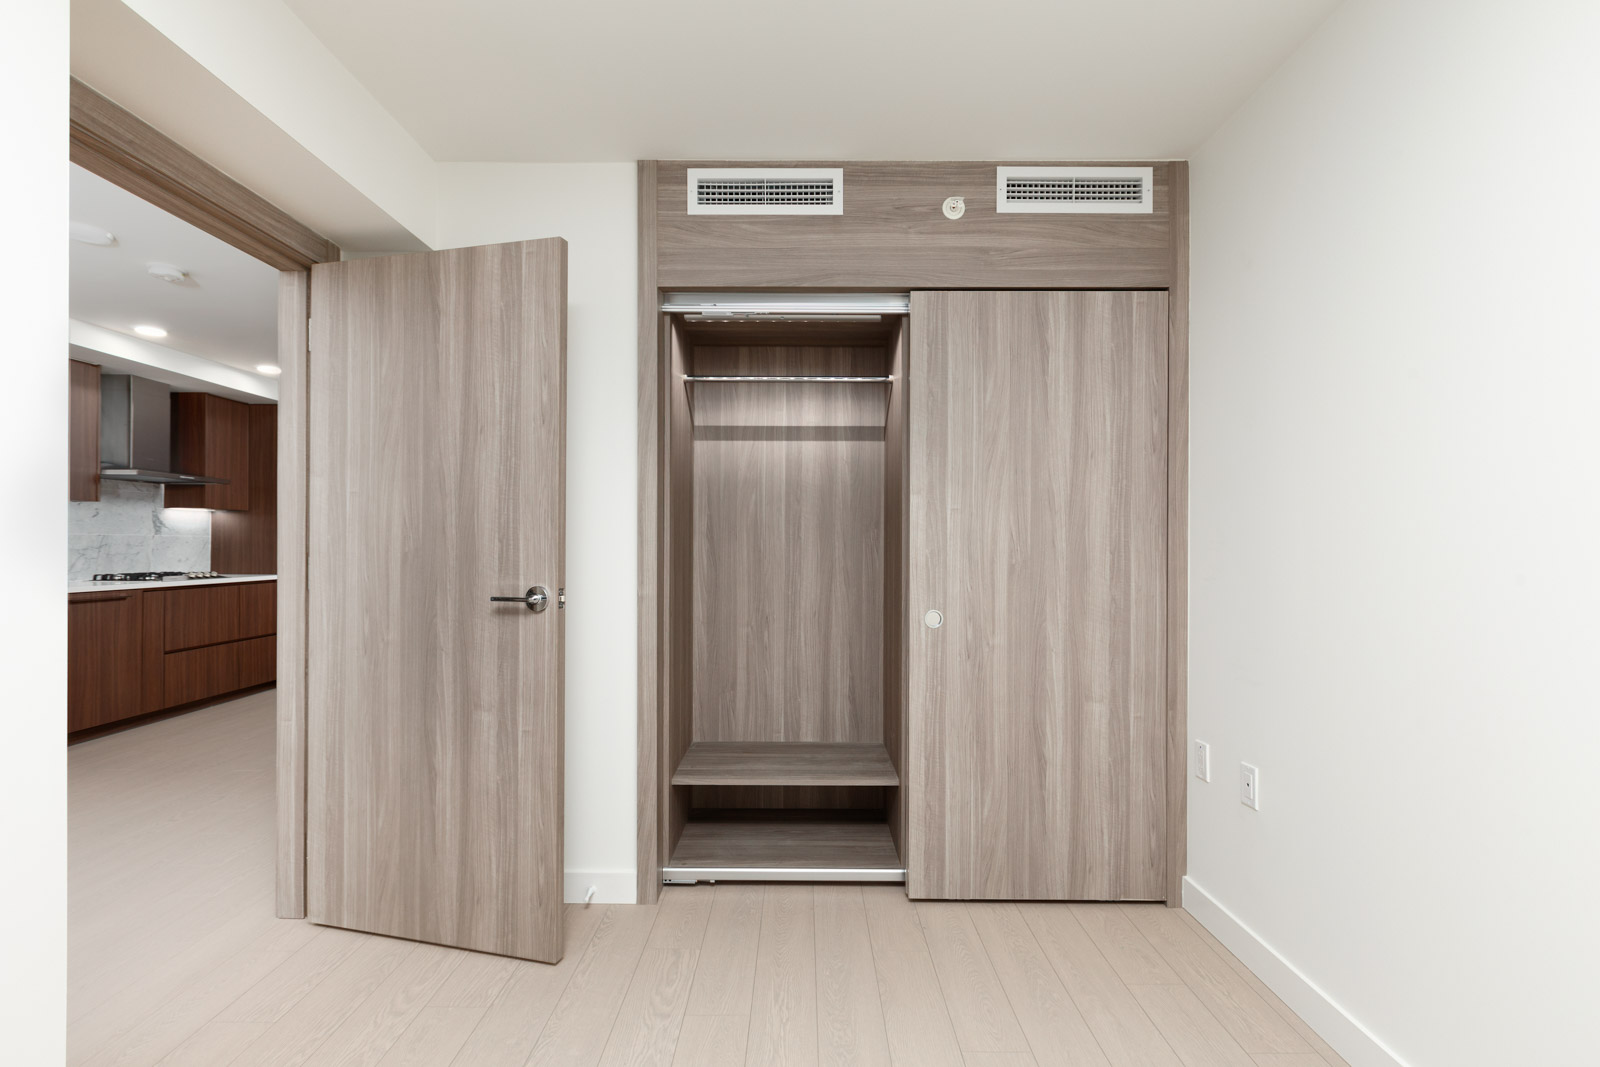 Bedroom and closet in Vancouver luxury condo rental managed by Birds Nest Properties.